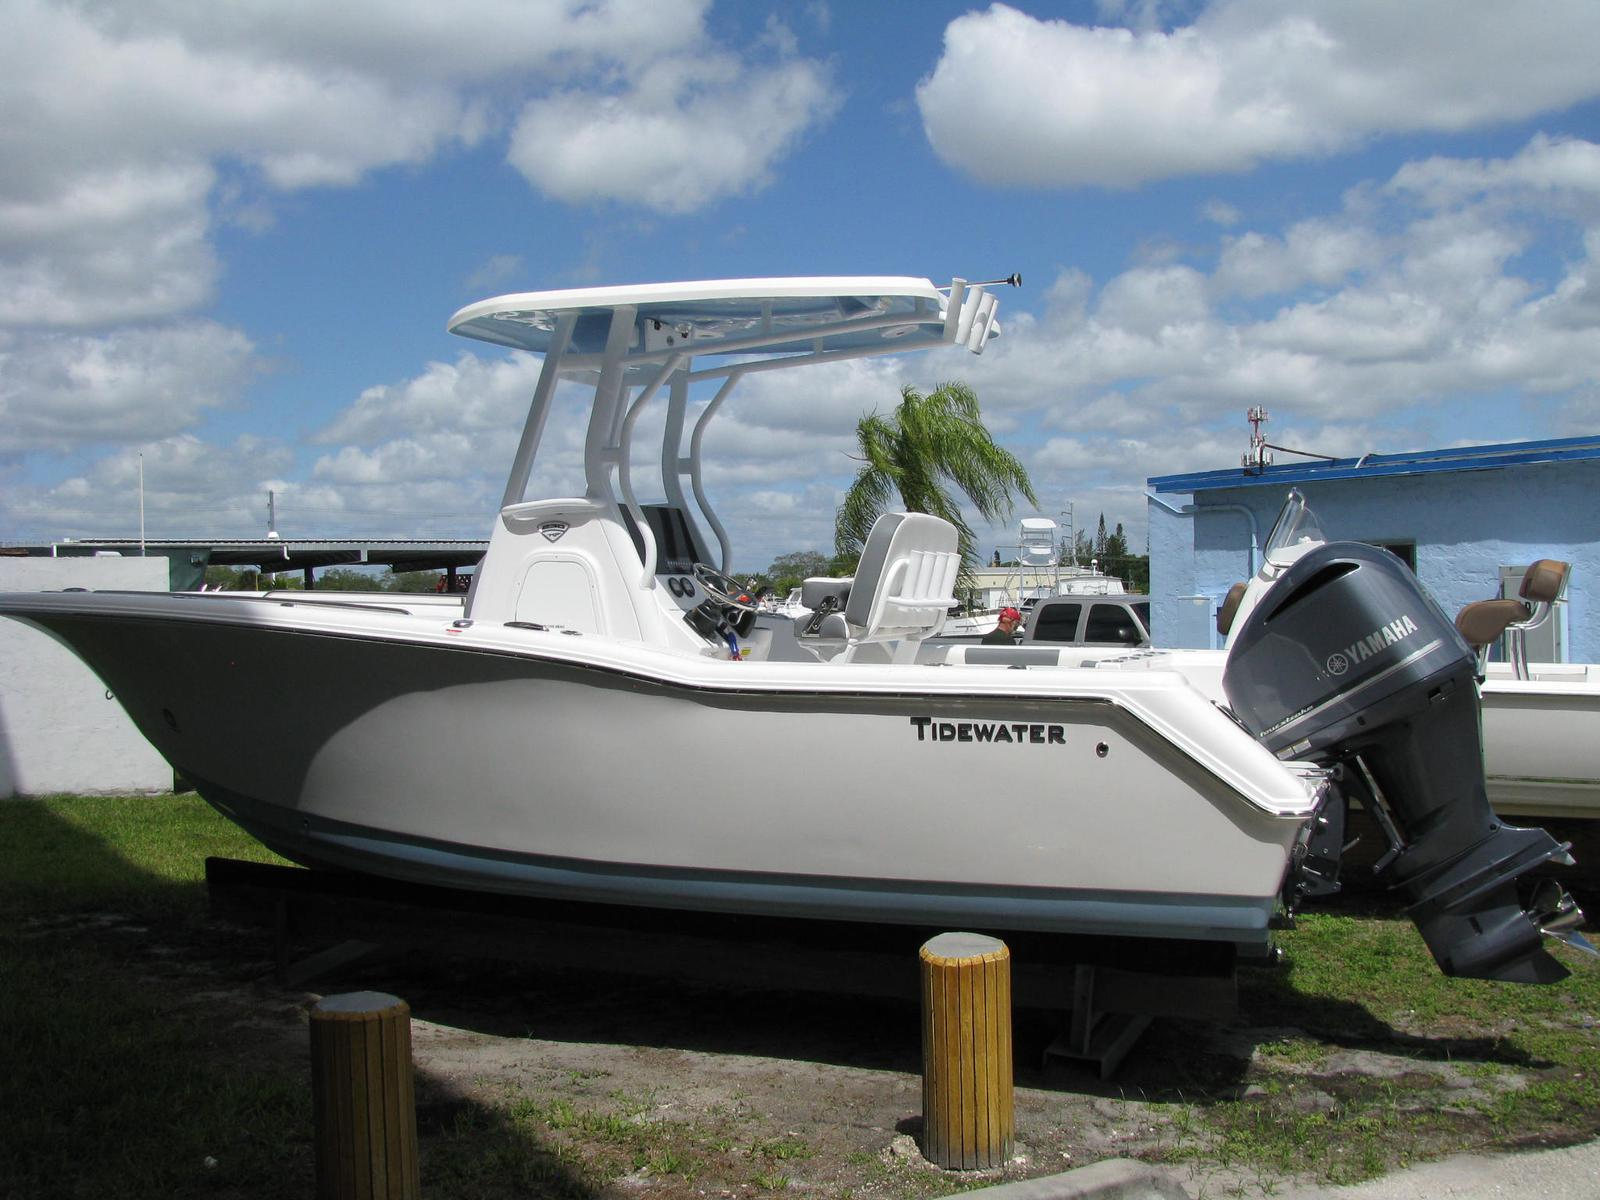 Center console tidewater boats boats for sale 8 for Tidewater 230 for sale